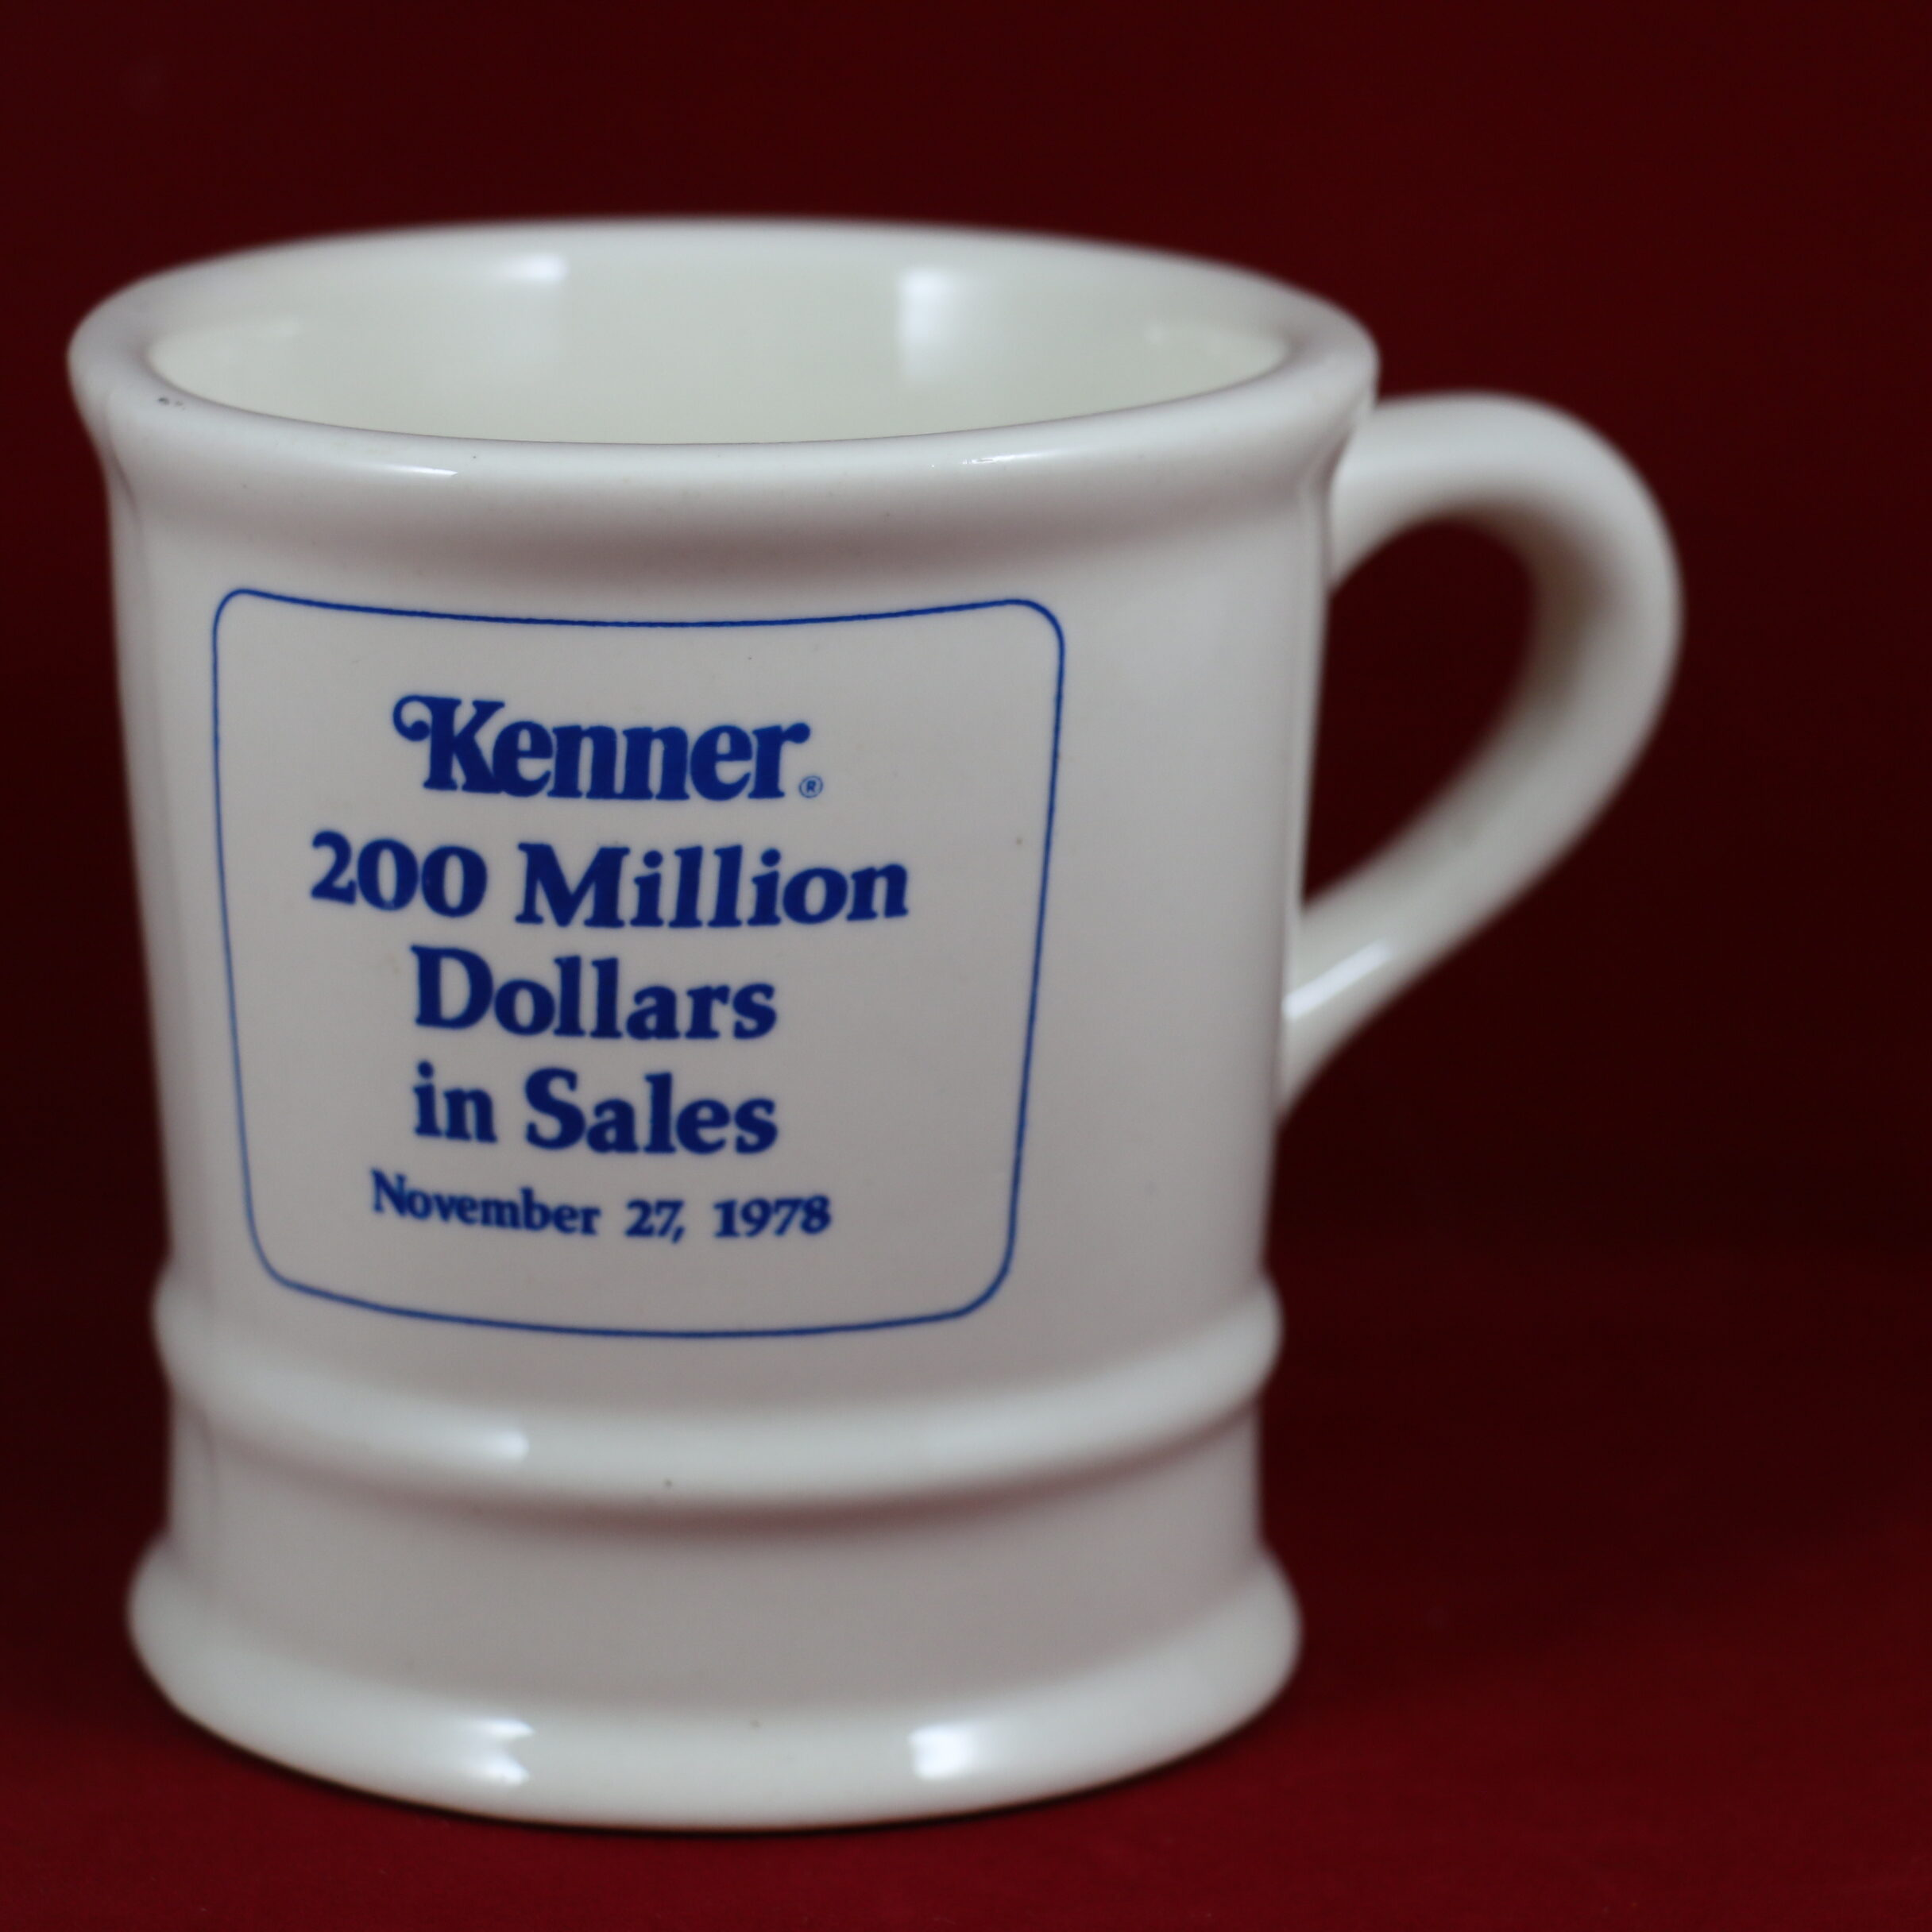 Kenner $200 Million Sales Mug Given To Employees To Celebrate